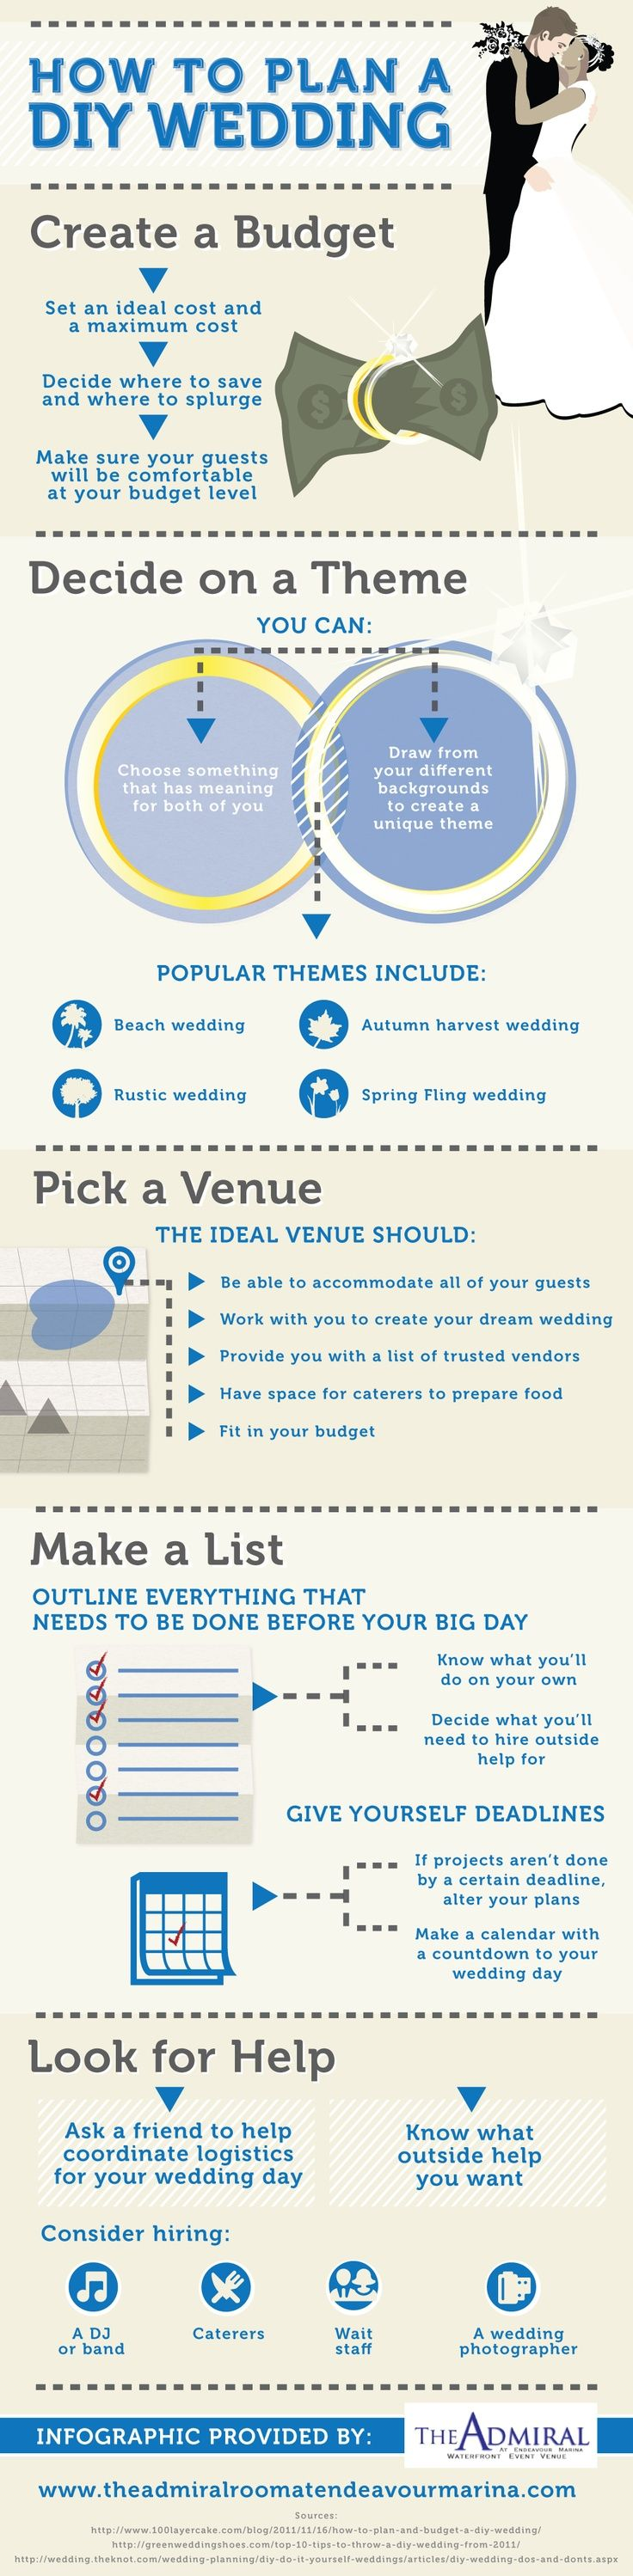 wedding planning checklist spreadsheet free%0A Check out this great do it yourself wedding infographic  Also  don u    t forget